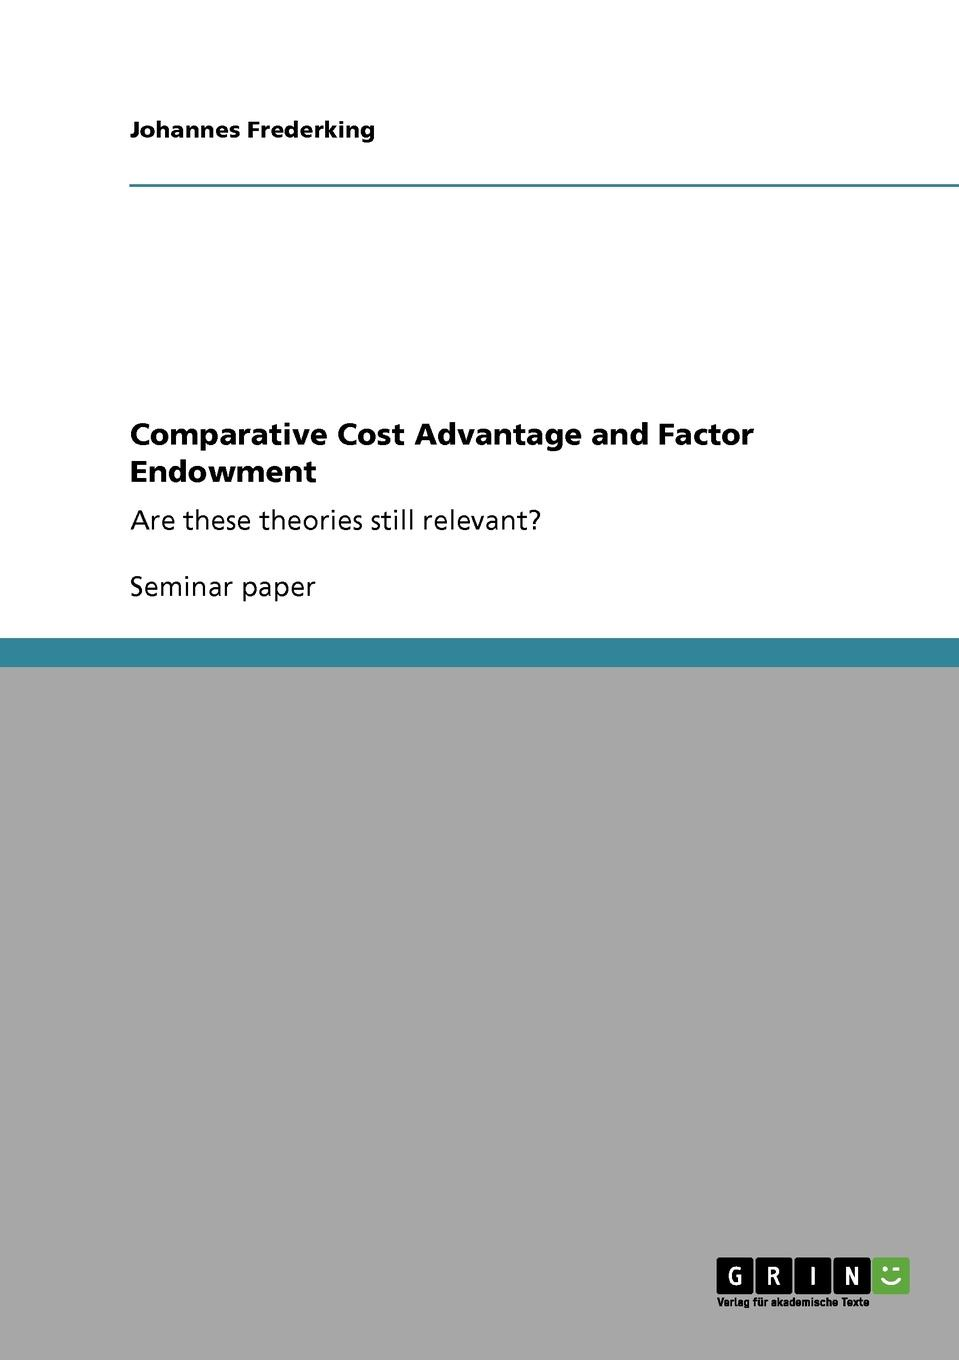 Johannes Frederking Comparative Cost Advantage and Factor Endowment vishaal kishore ricardo s gauntlet economic fiction and the flawed case for free trade